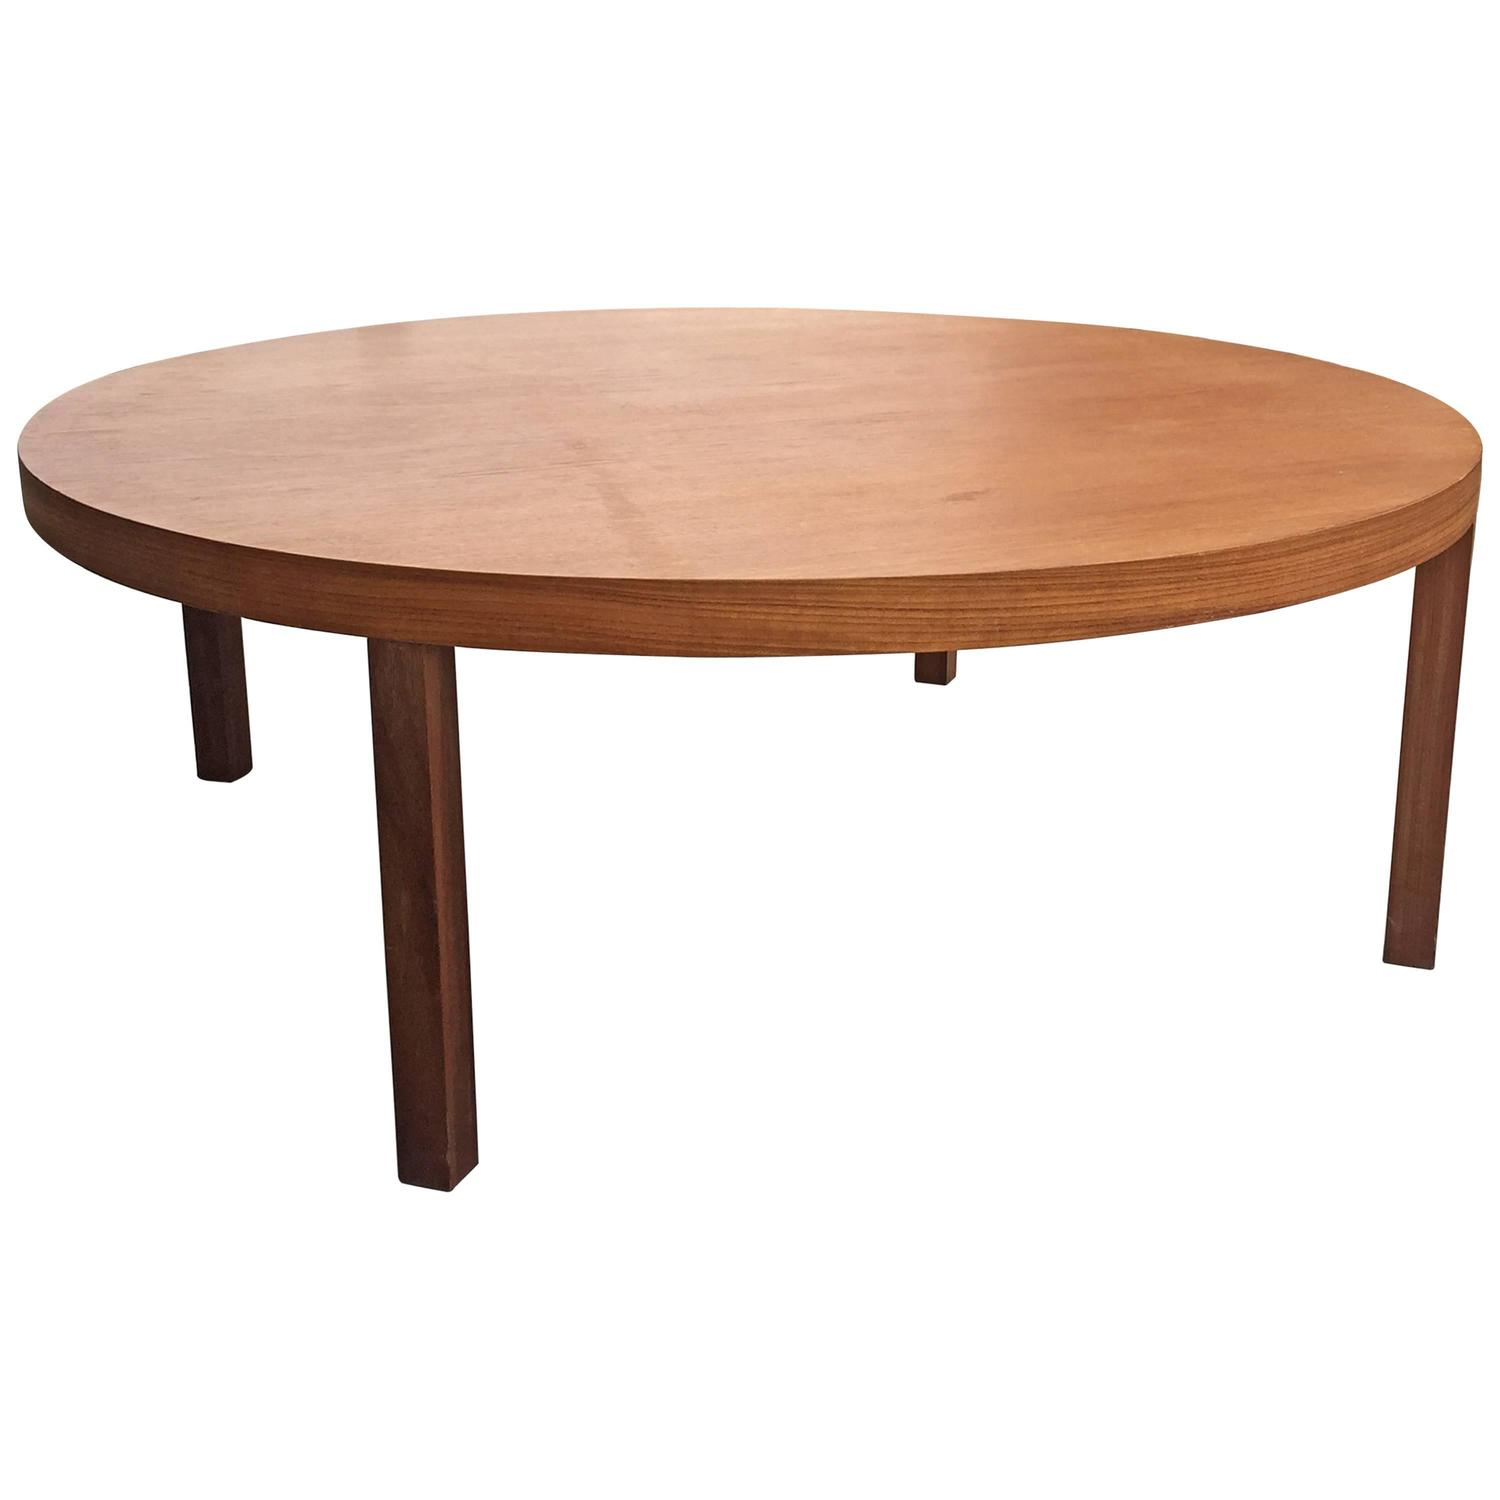 Simple Danish Teak Round Coffee Table At 1stdibs